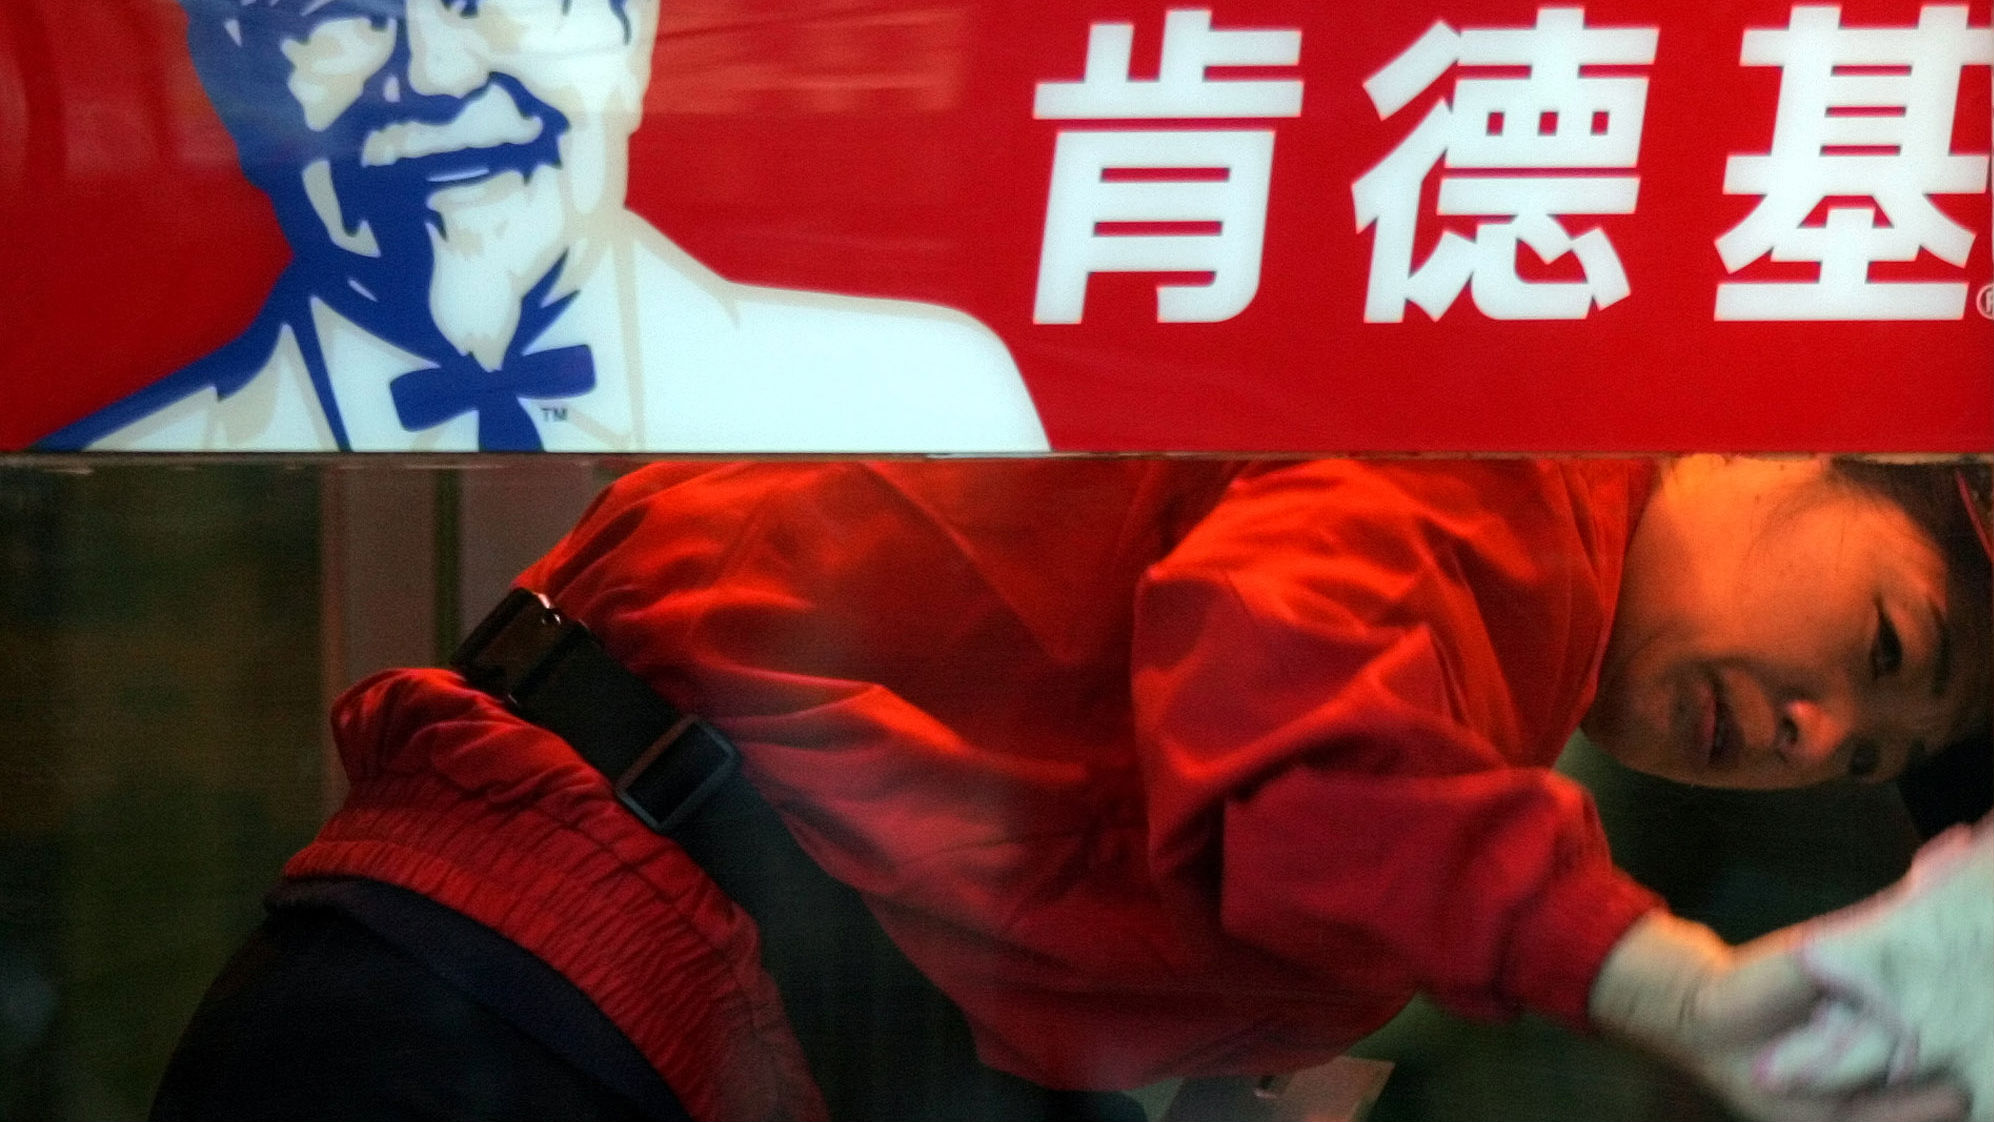 A Chinese worker cleans the glass door of a KFC restaurant in Beijing Tuesday, Jan 18, 2005. China's relentless appetite for the colonel's chicken has KFC on a building boom in the world's most populous country, with 1,200 locations, soaring profits and a menu that mixes in bamboo shoots and lotus roots.